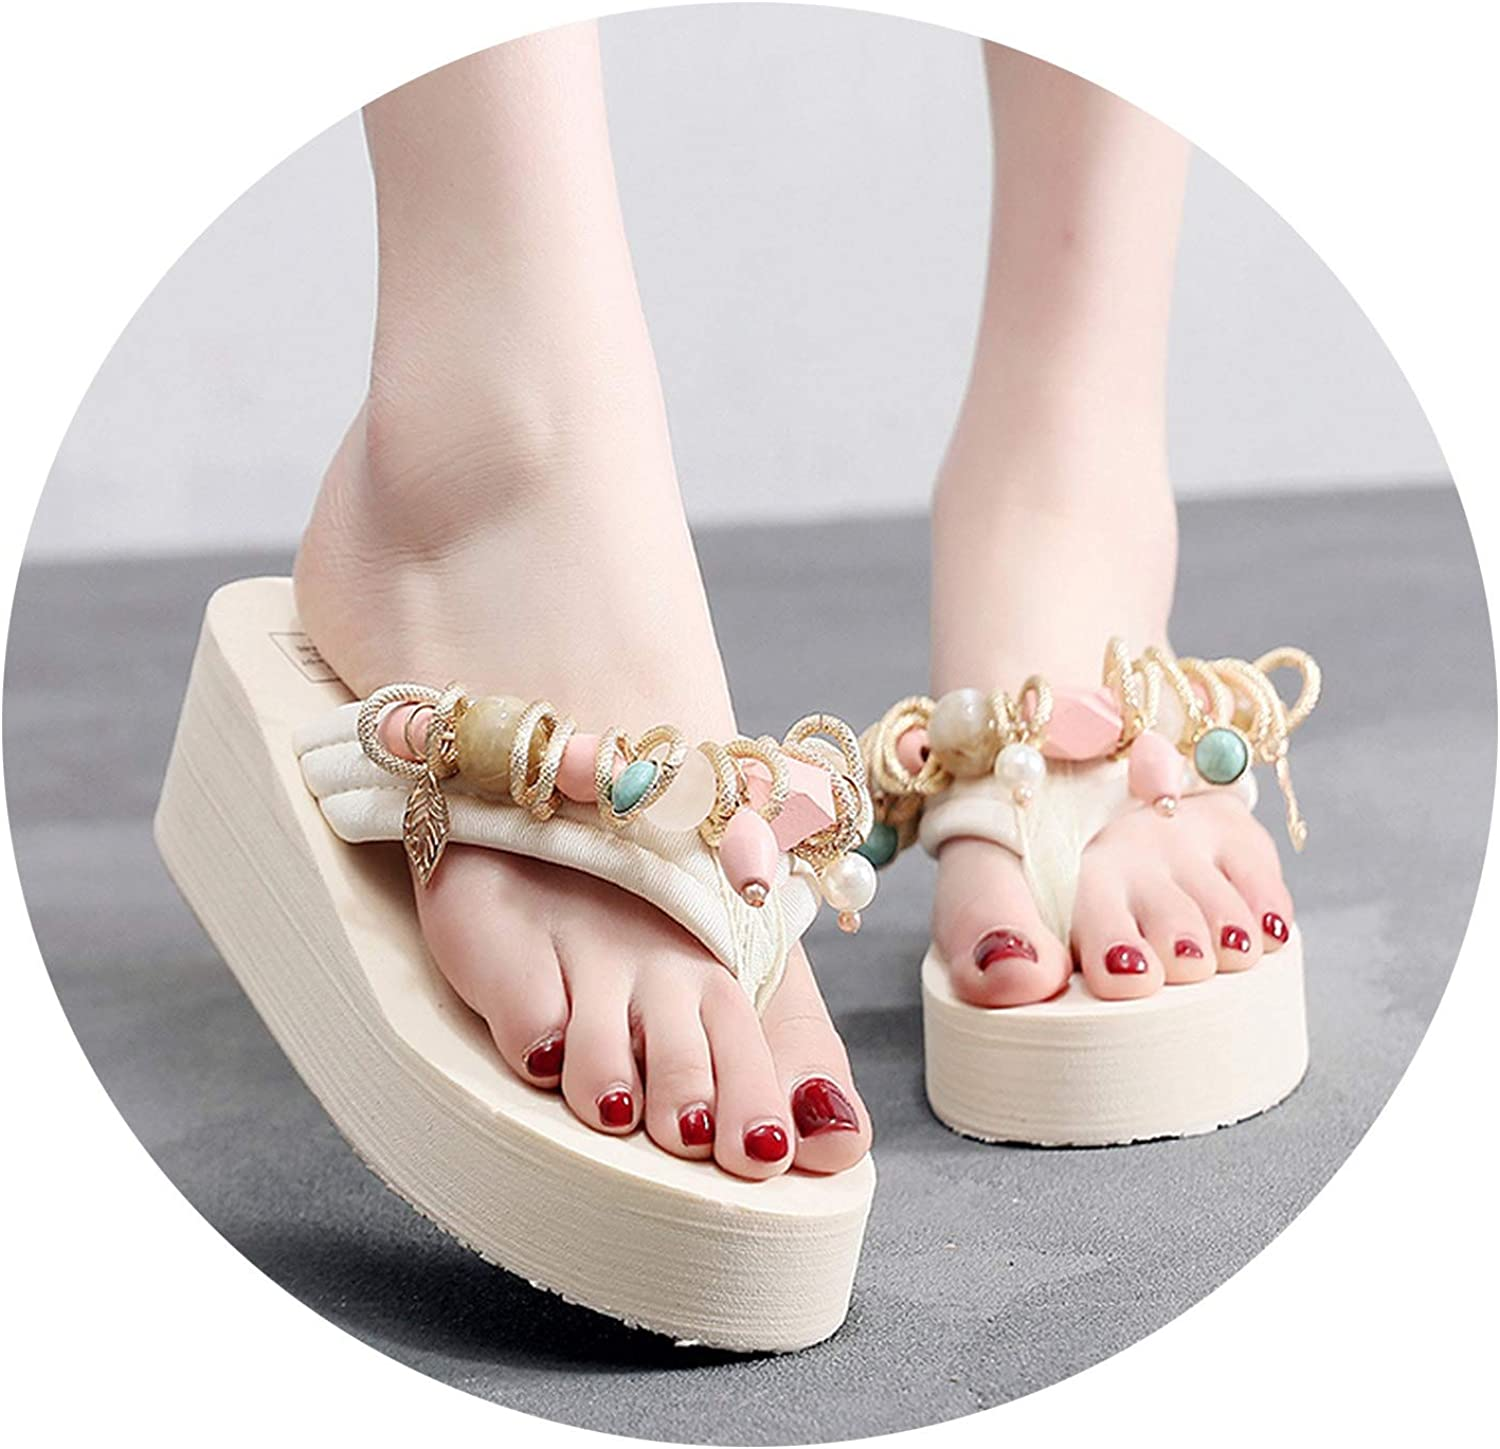 Slides Home Slippers Summer Bead Leaf Slippers One-Shouldered Platform shoes,Beige,10.5,